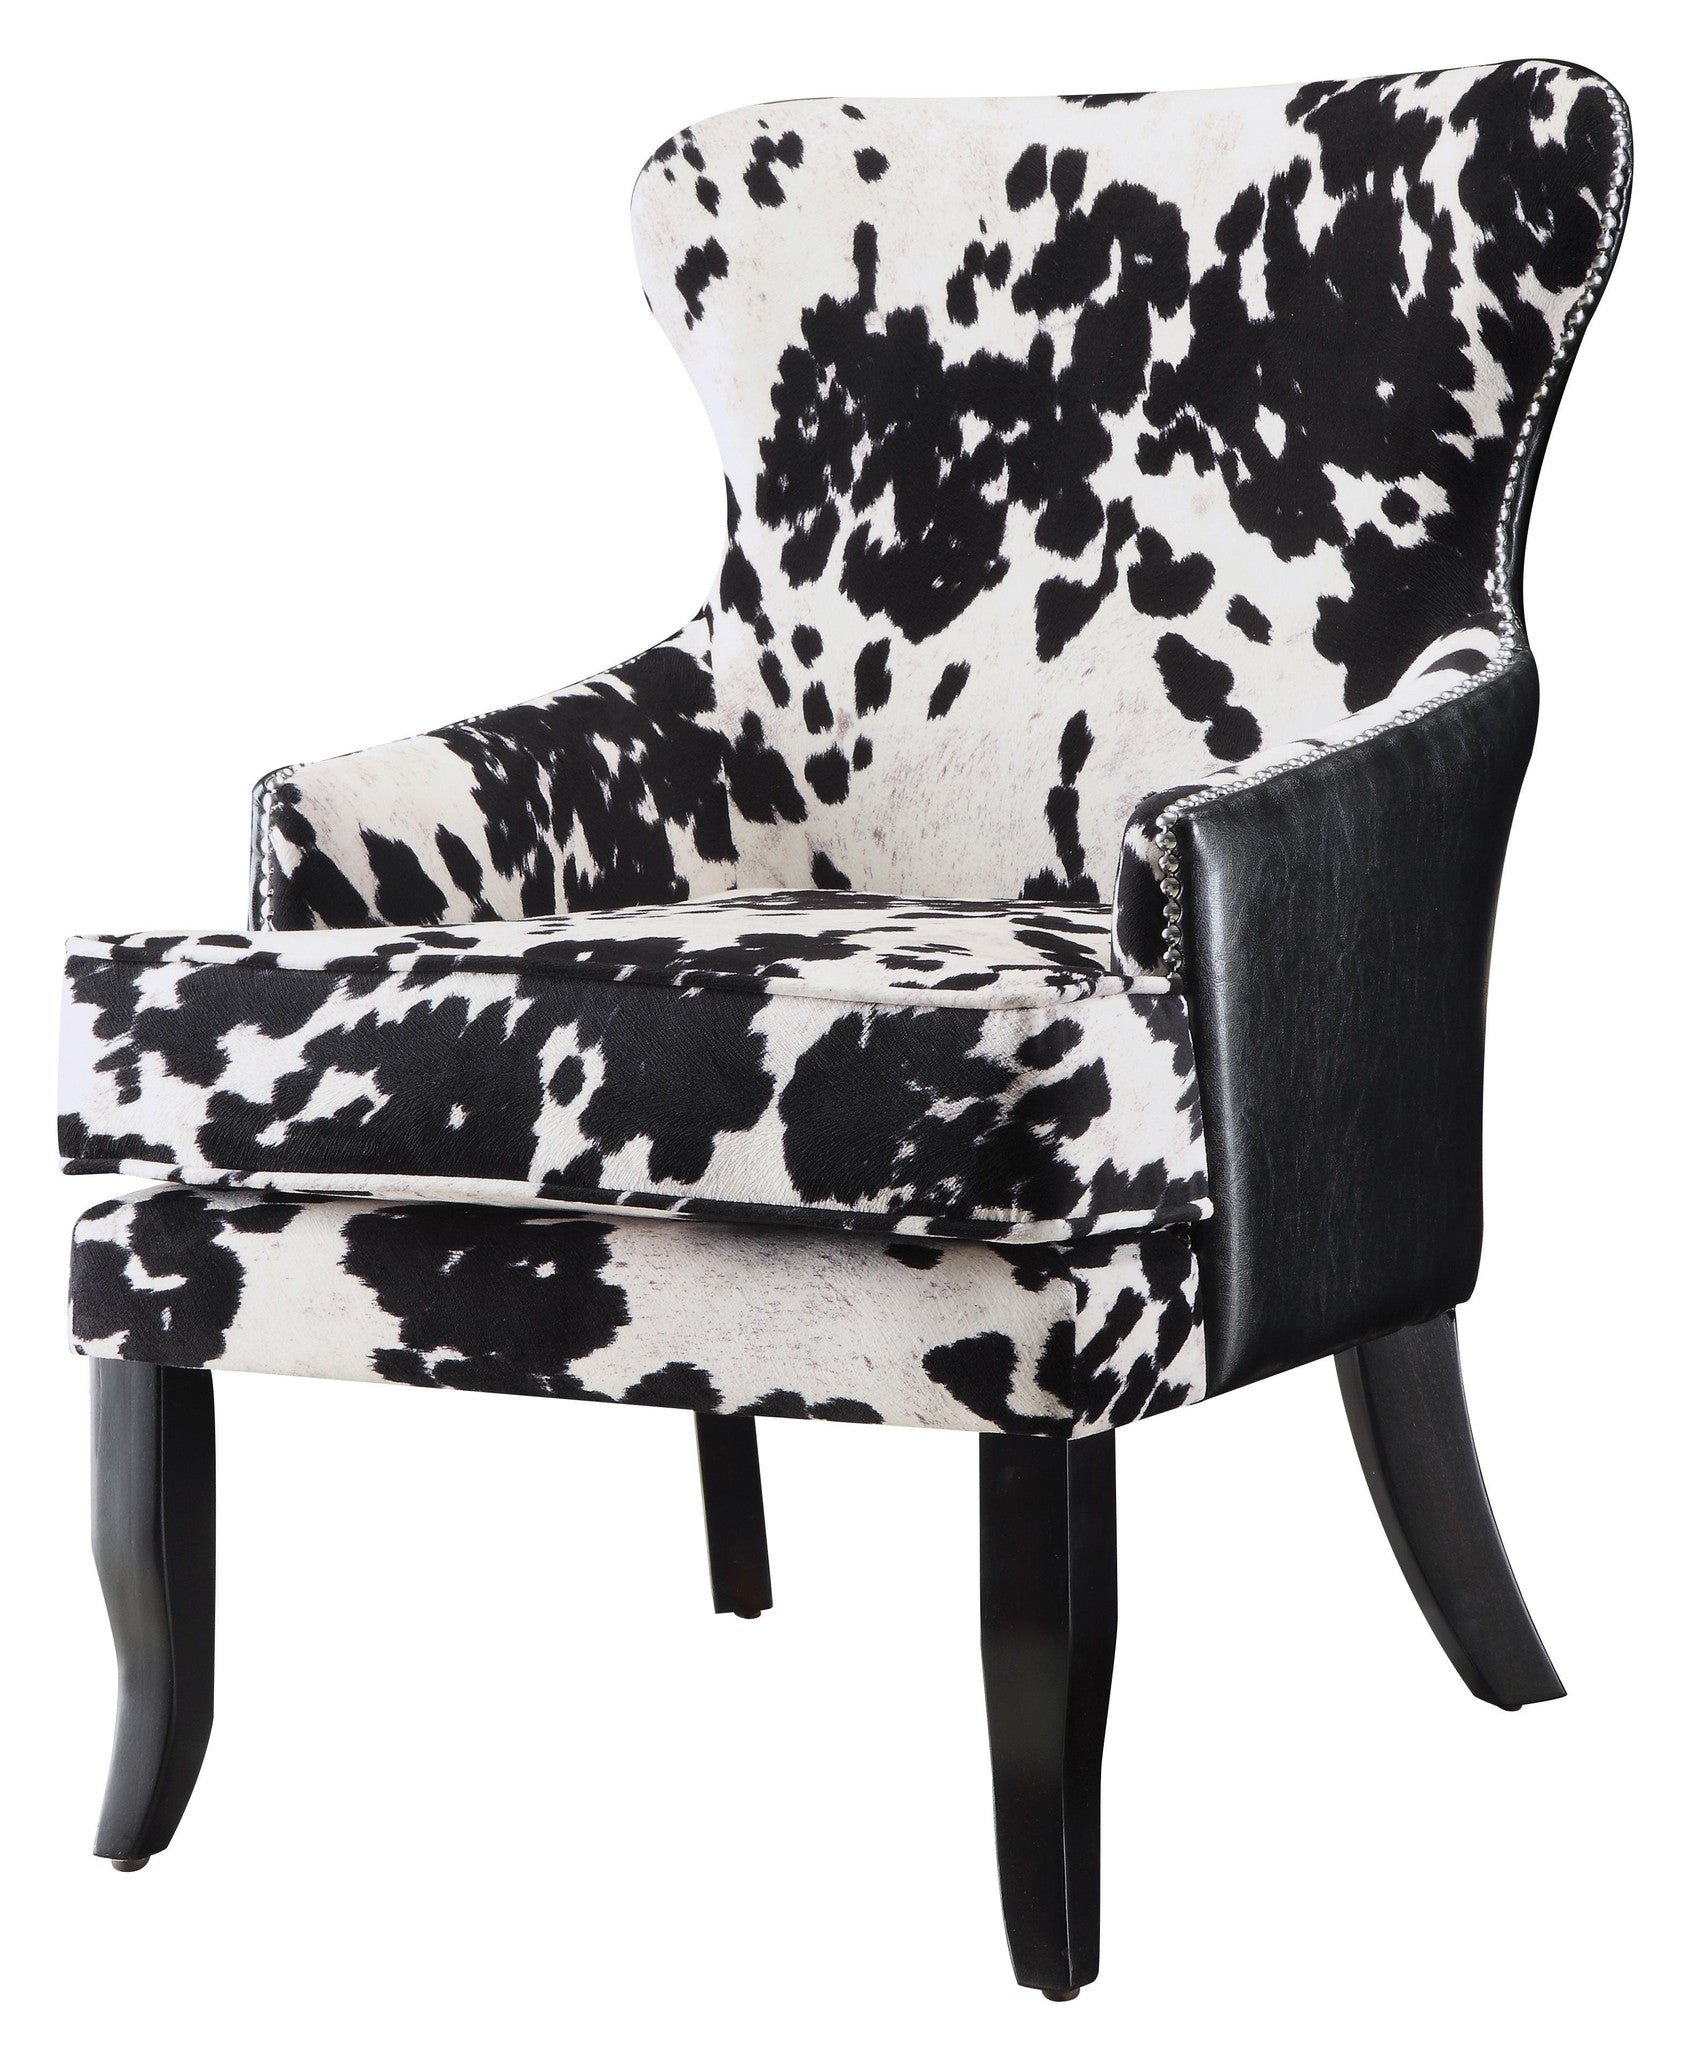 High Quality Mooey Chair, Cow Print Chair, Modern Chair, Black And White Chair,